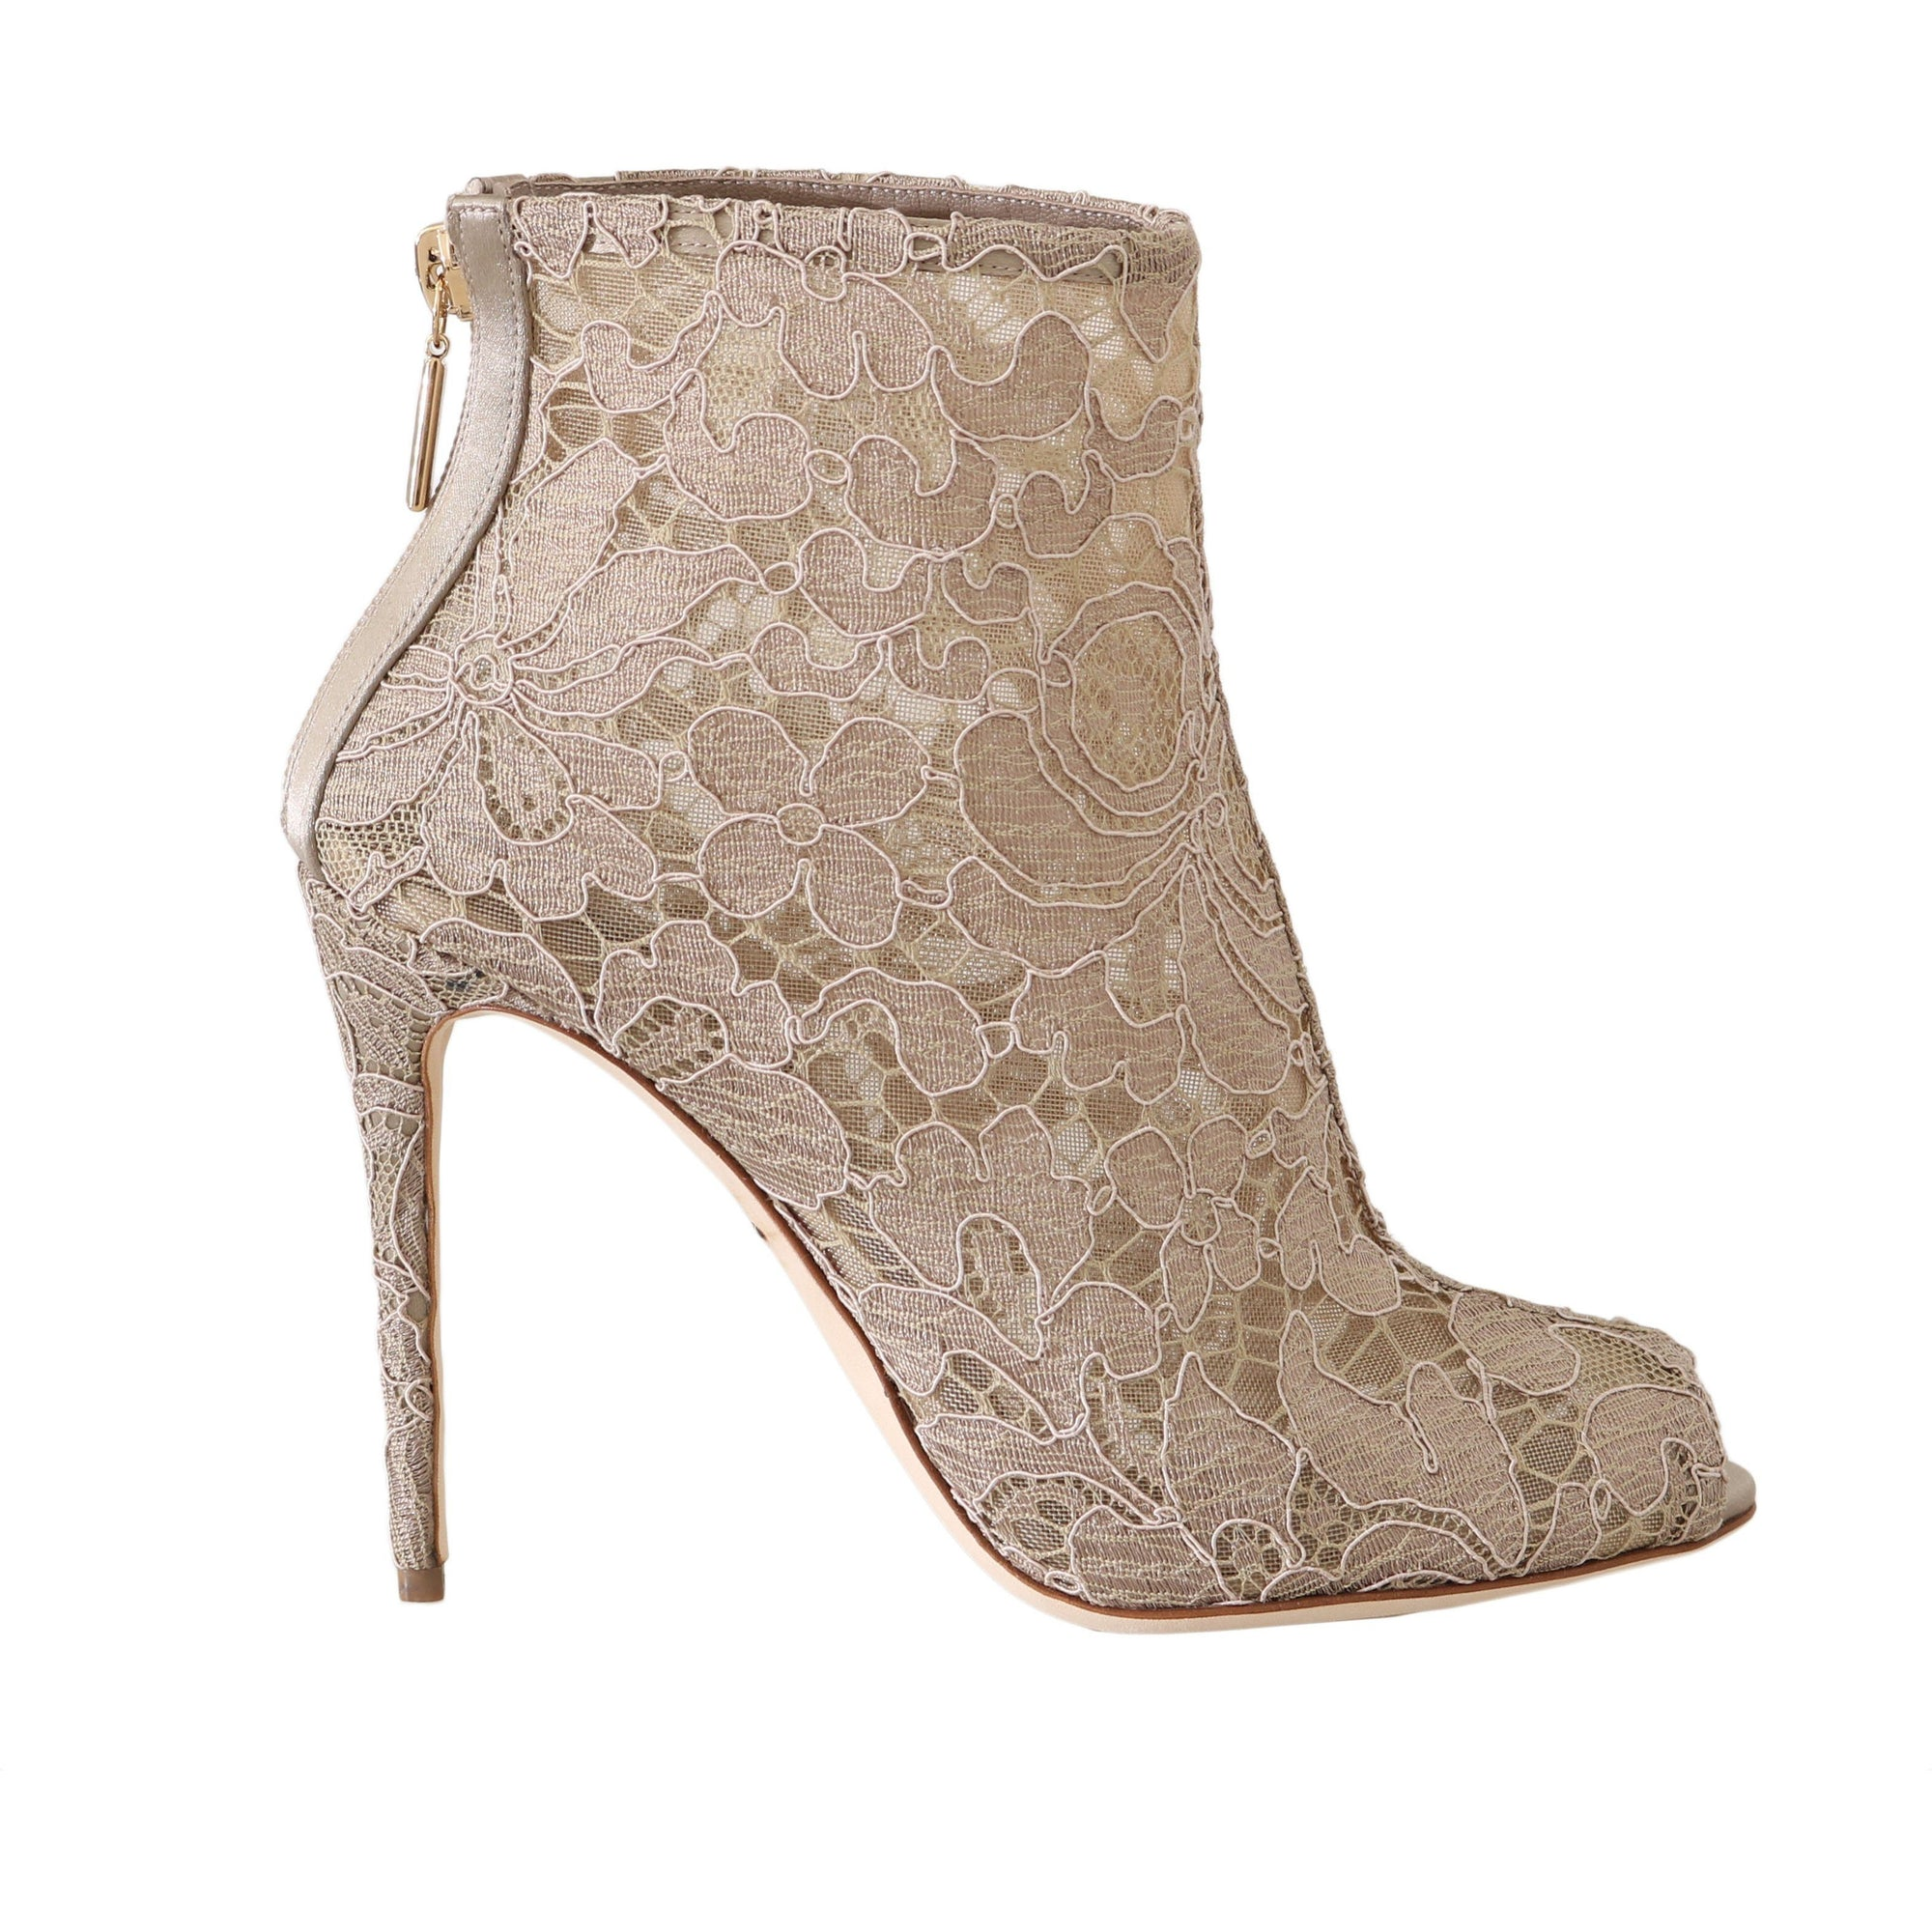 Beige Leather Cotton Lace Booties Dolce & Gabbana